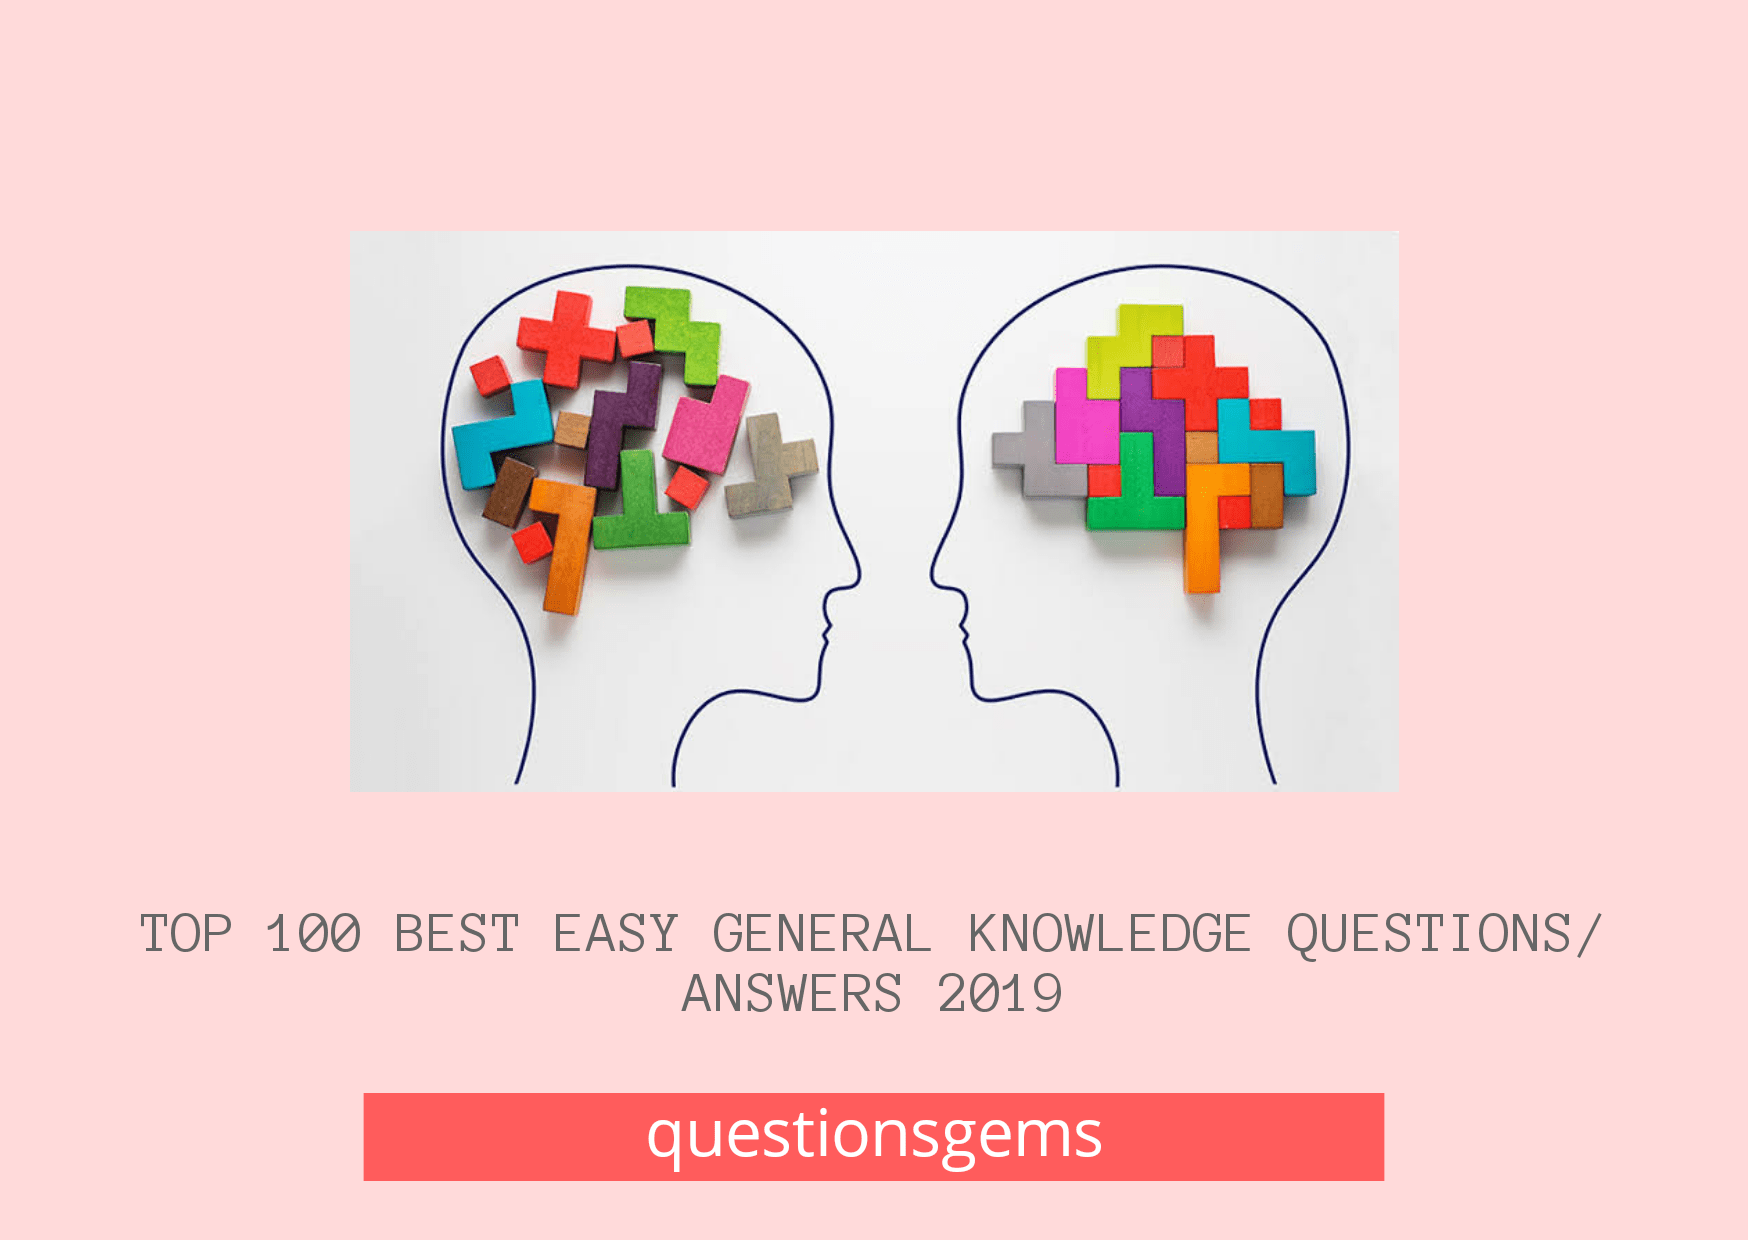 Best Easy General Knowledge Questions And Answers 2019